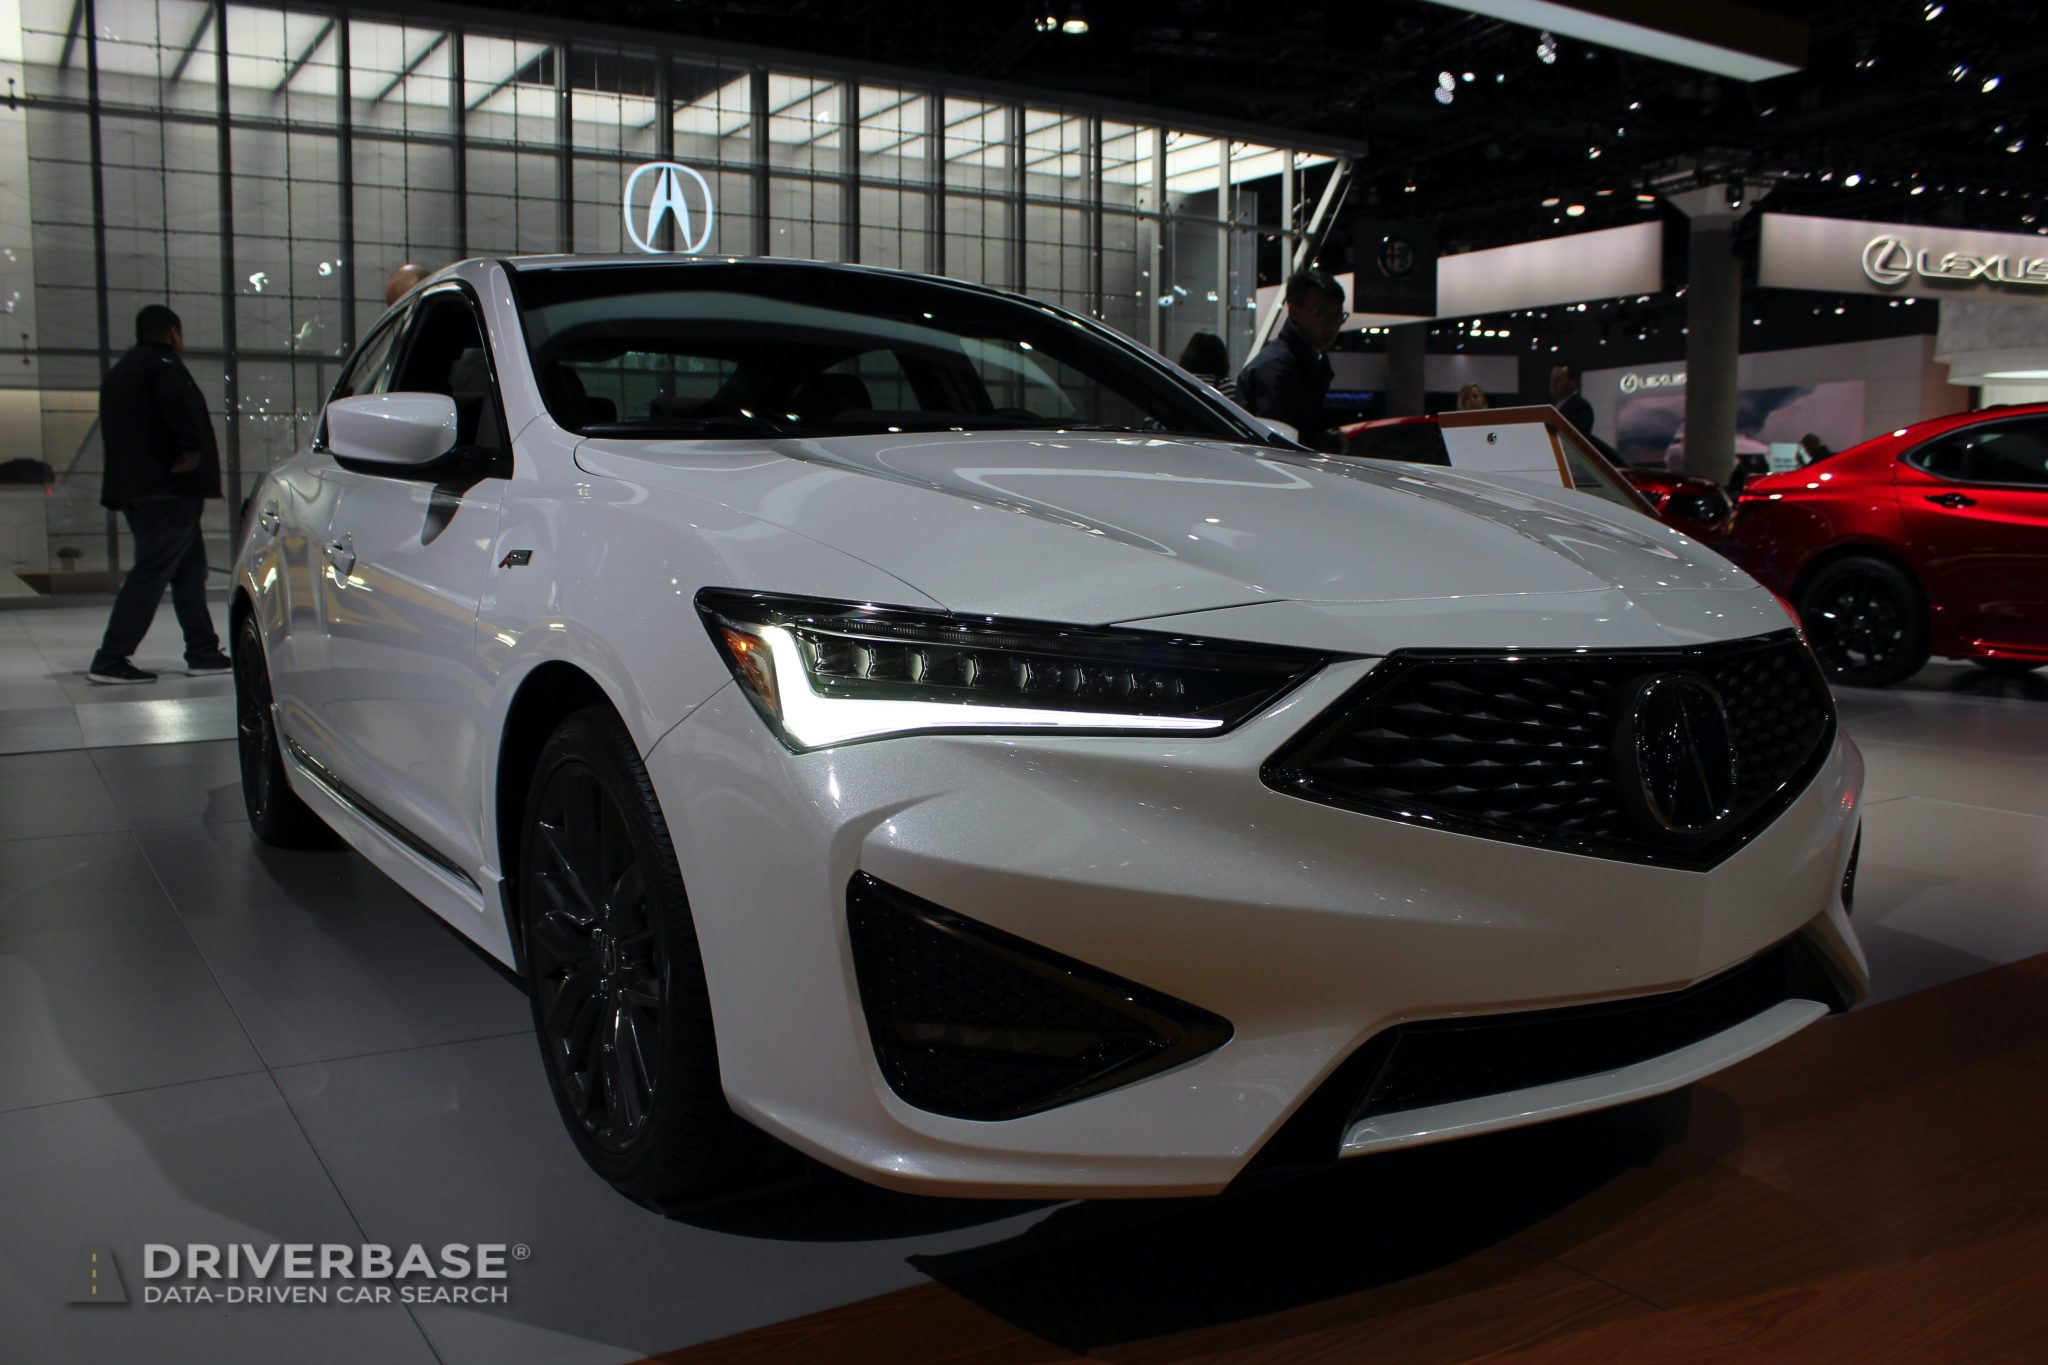 2020 Acura ILX at the 2019 Los Angeles Auto Show